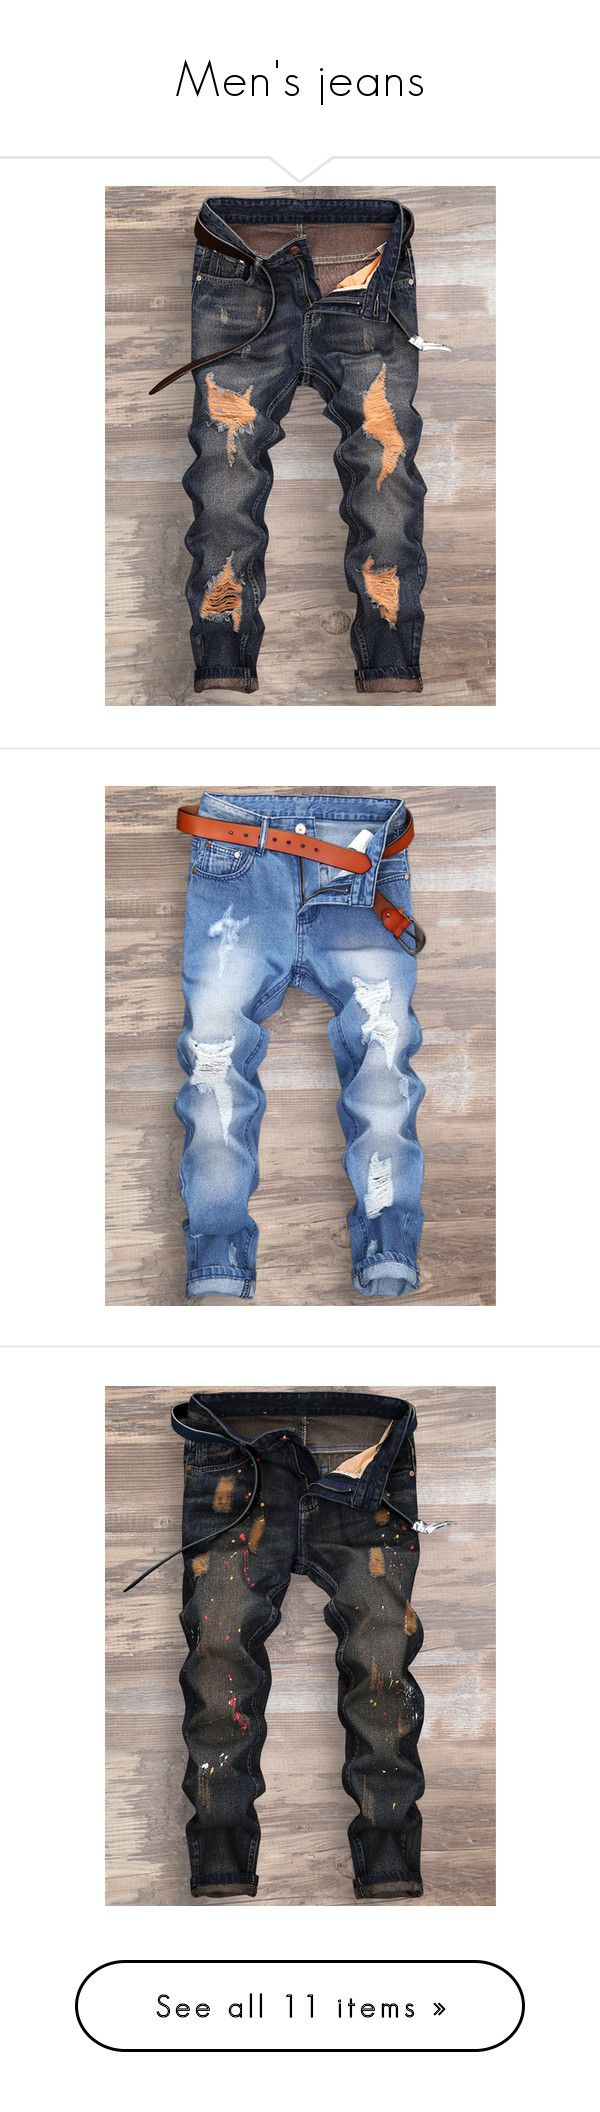 """Men's jeans"" by rosegal-official ❤ liked on Polyvore featuring men's fashion, men's clothing, men's jeans, mens distressed jeans, mens cuffed jeans, mens destroyed jeans, mens torn jeans, mens ripped jeans, mens zipper jeans and men's paint splatter jean http://www.99wtf.net/men/mens-hairstyles/trendy-fantastic-hair-products-men/"